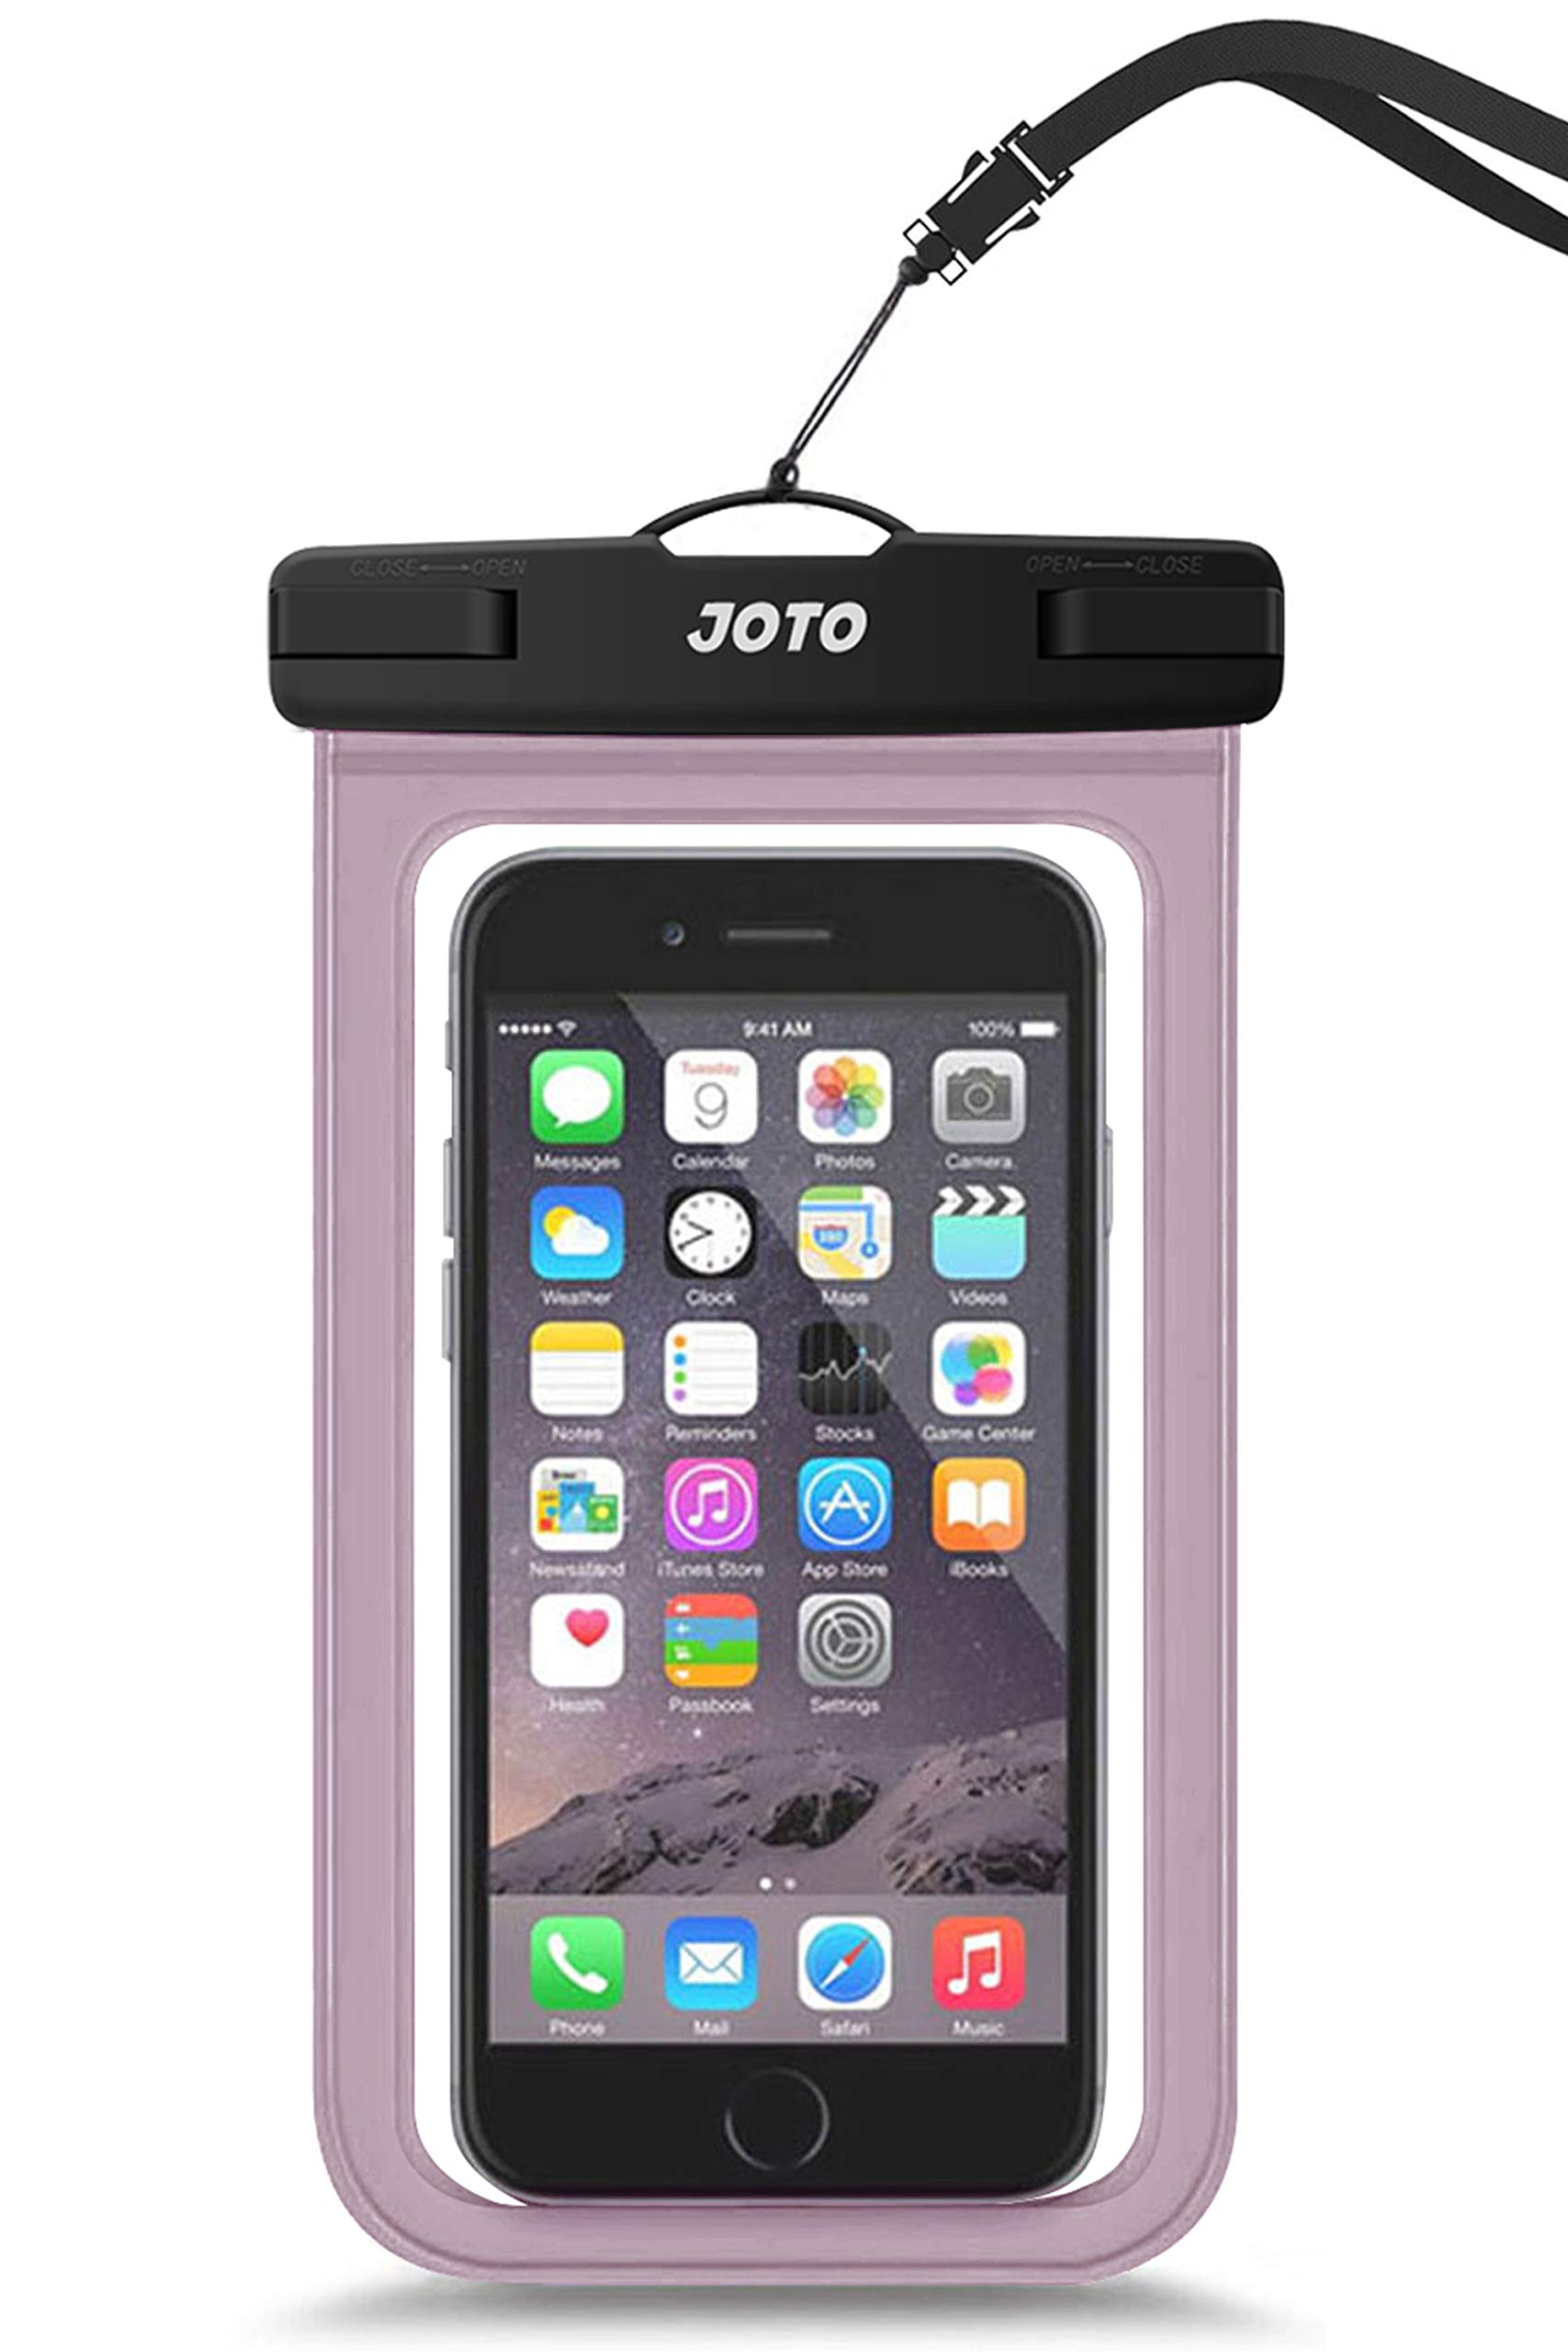 """JOTO Universal Waterproof Pouch Cellphone Dry Bag Case for iPhone 11 Pro Max Xs Max XR X 8 7 6S Plus, Galaxy S20 Ultra S20+ S10 Plus S10e S9 Plus S8/Note 10+ 10 9 8, Pixel 4 XL up to 6.9"""" -Clearpurple"""